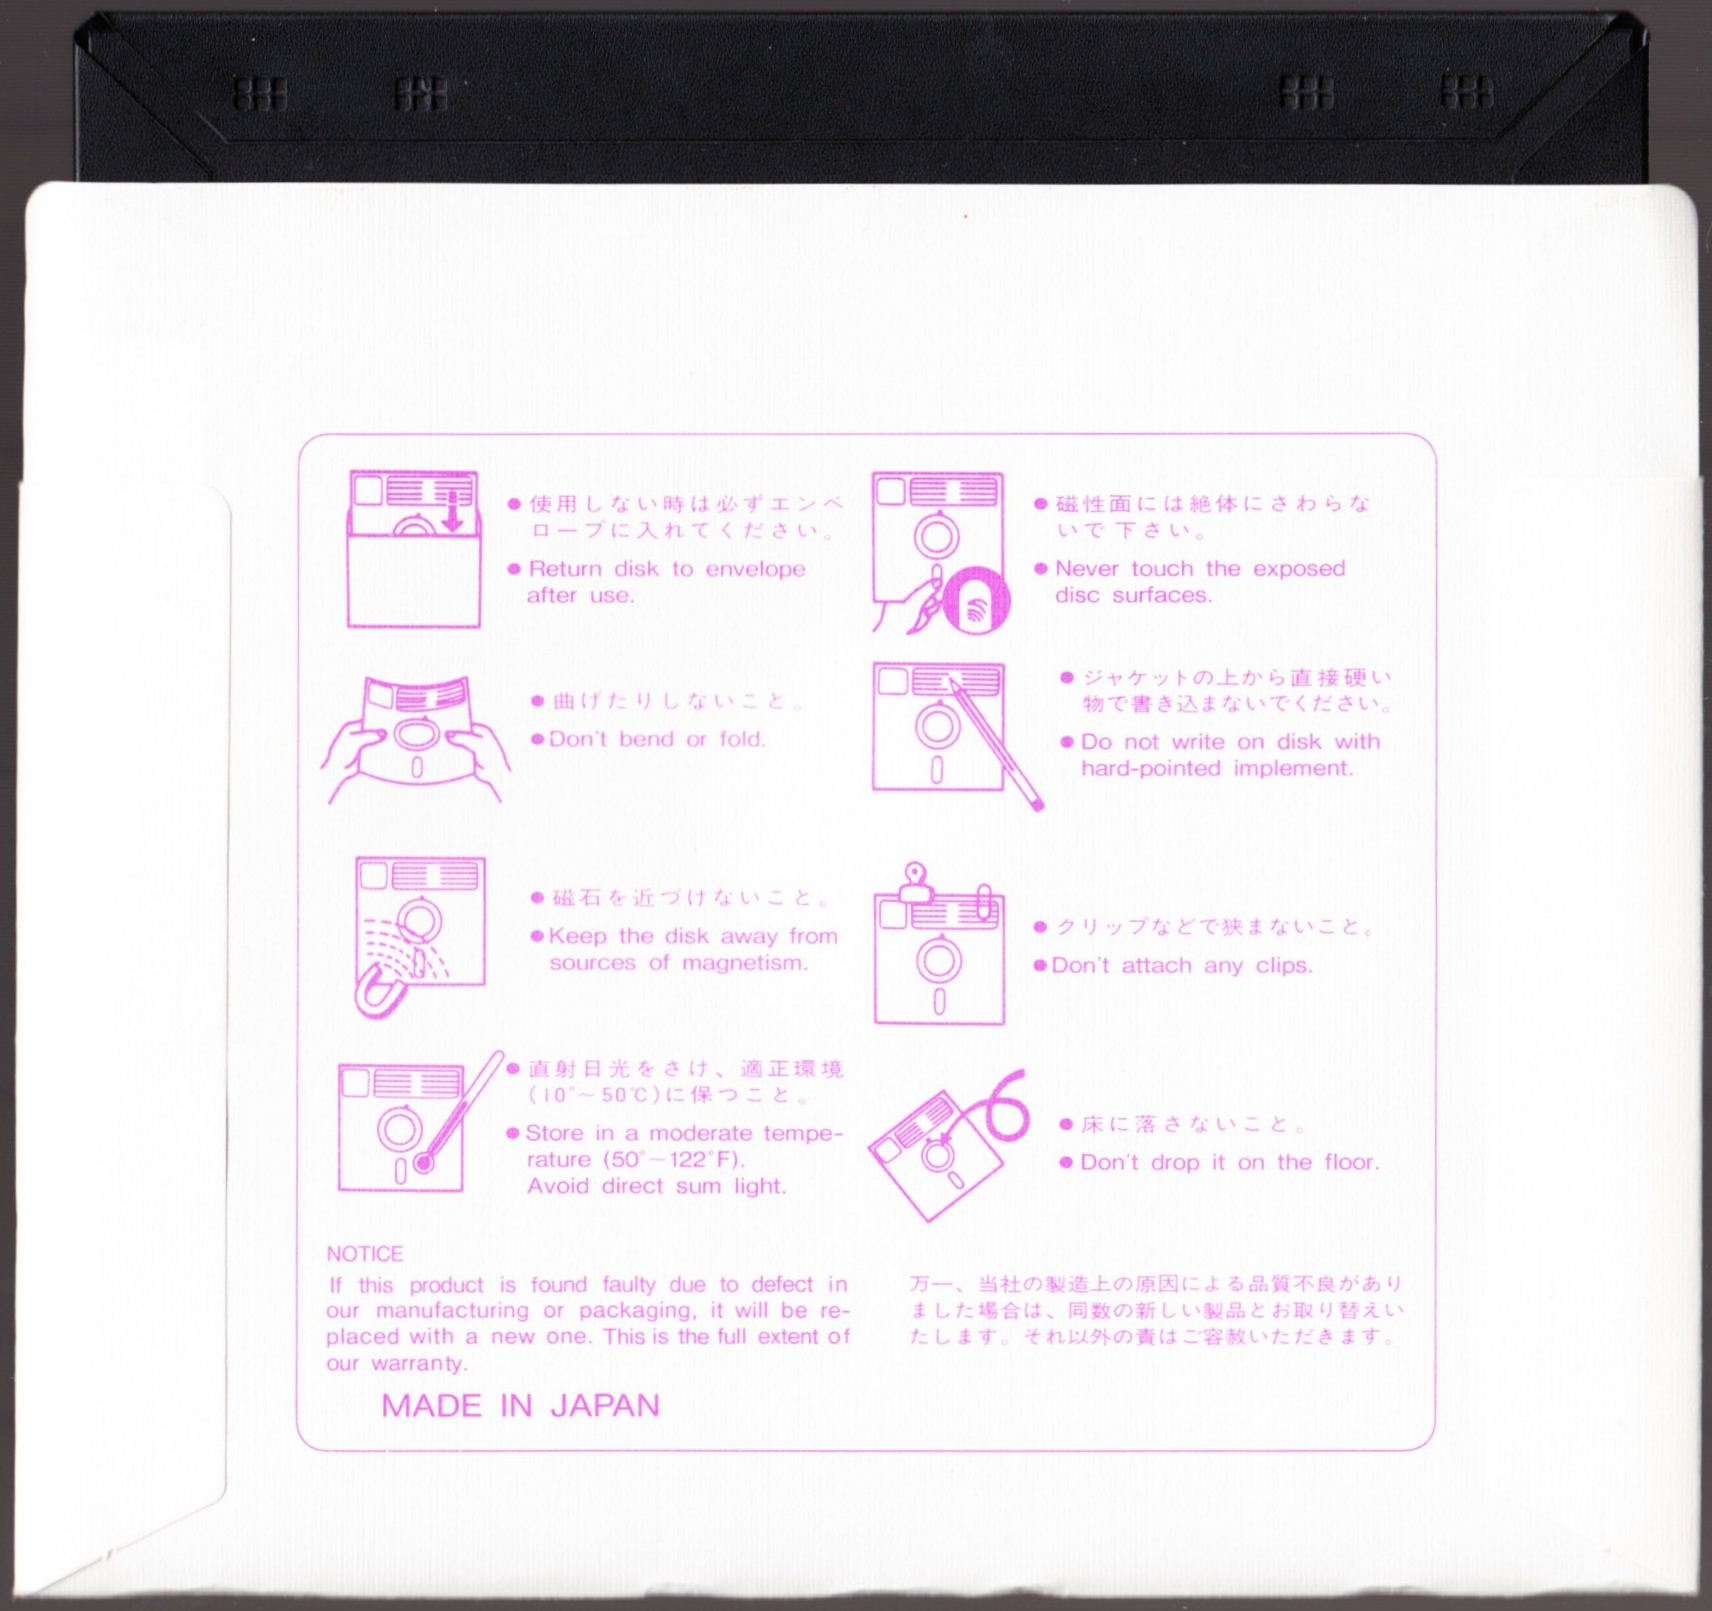 Game - Dungeon Master II - JP - PC-9801 - 5.25-inch - Disk B Key Disk - Back - Scan